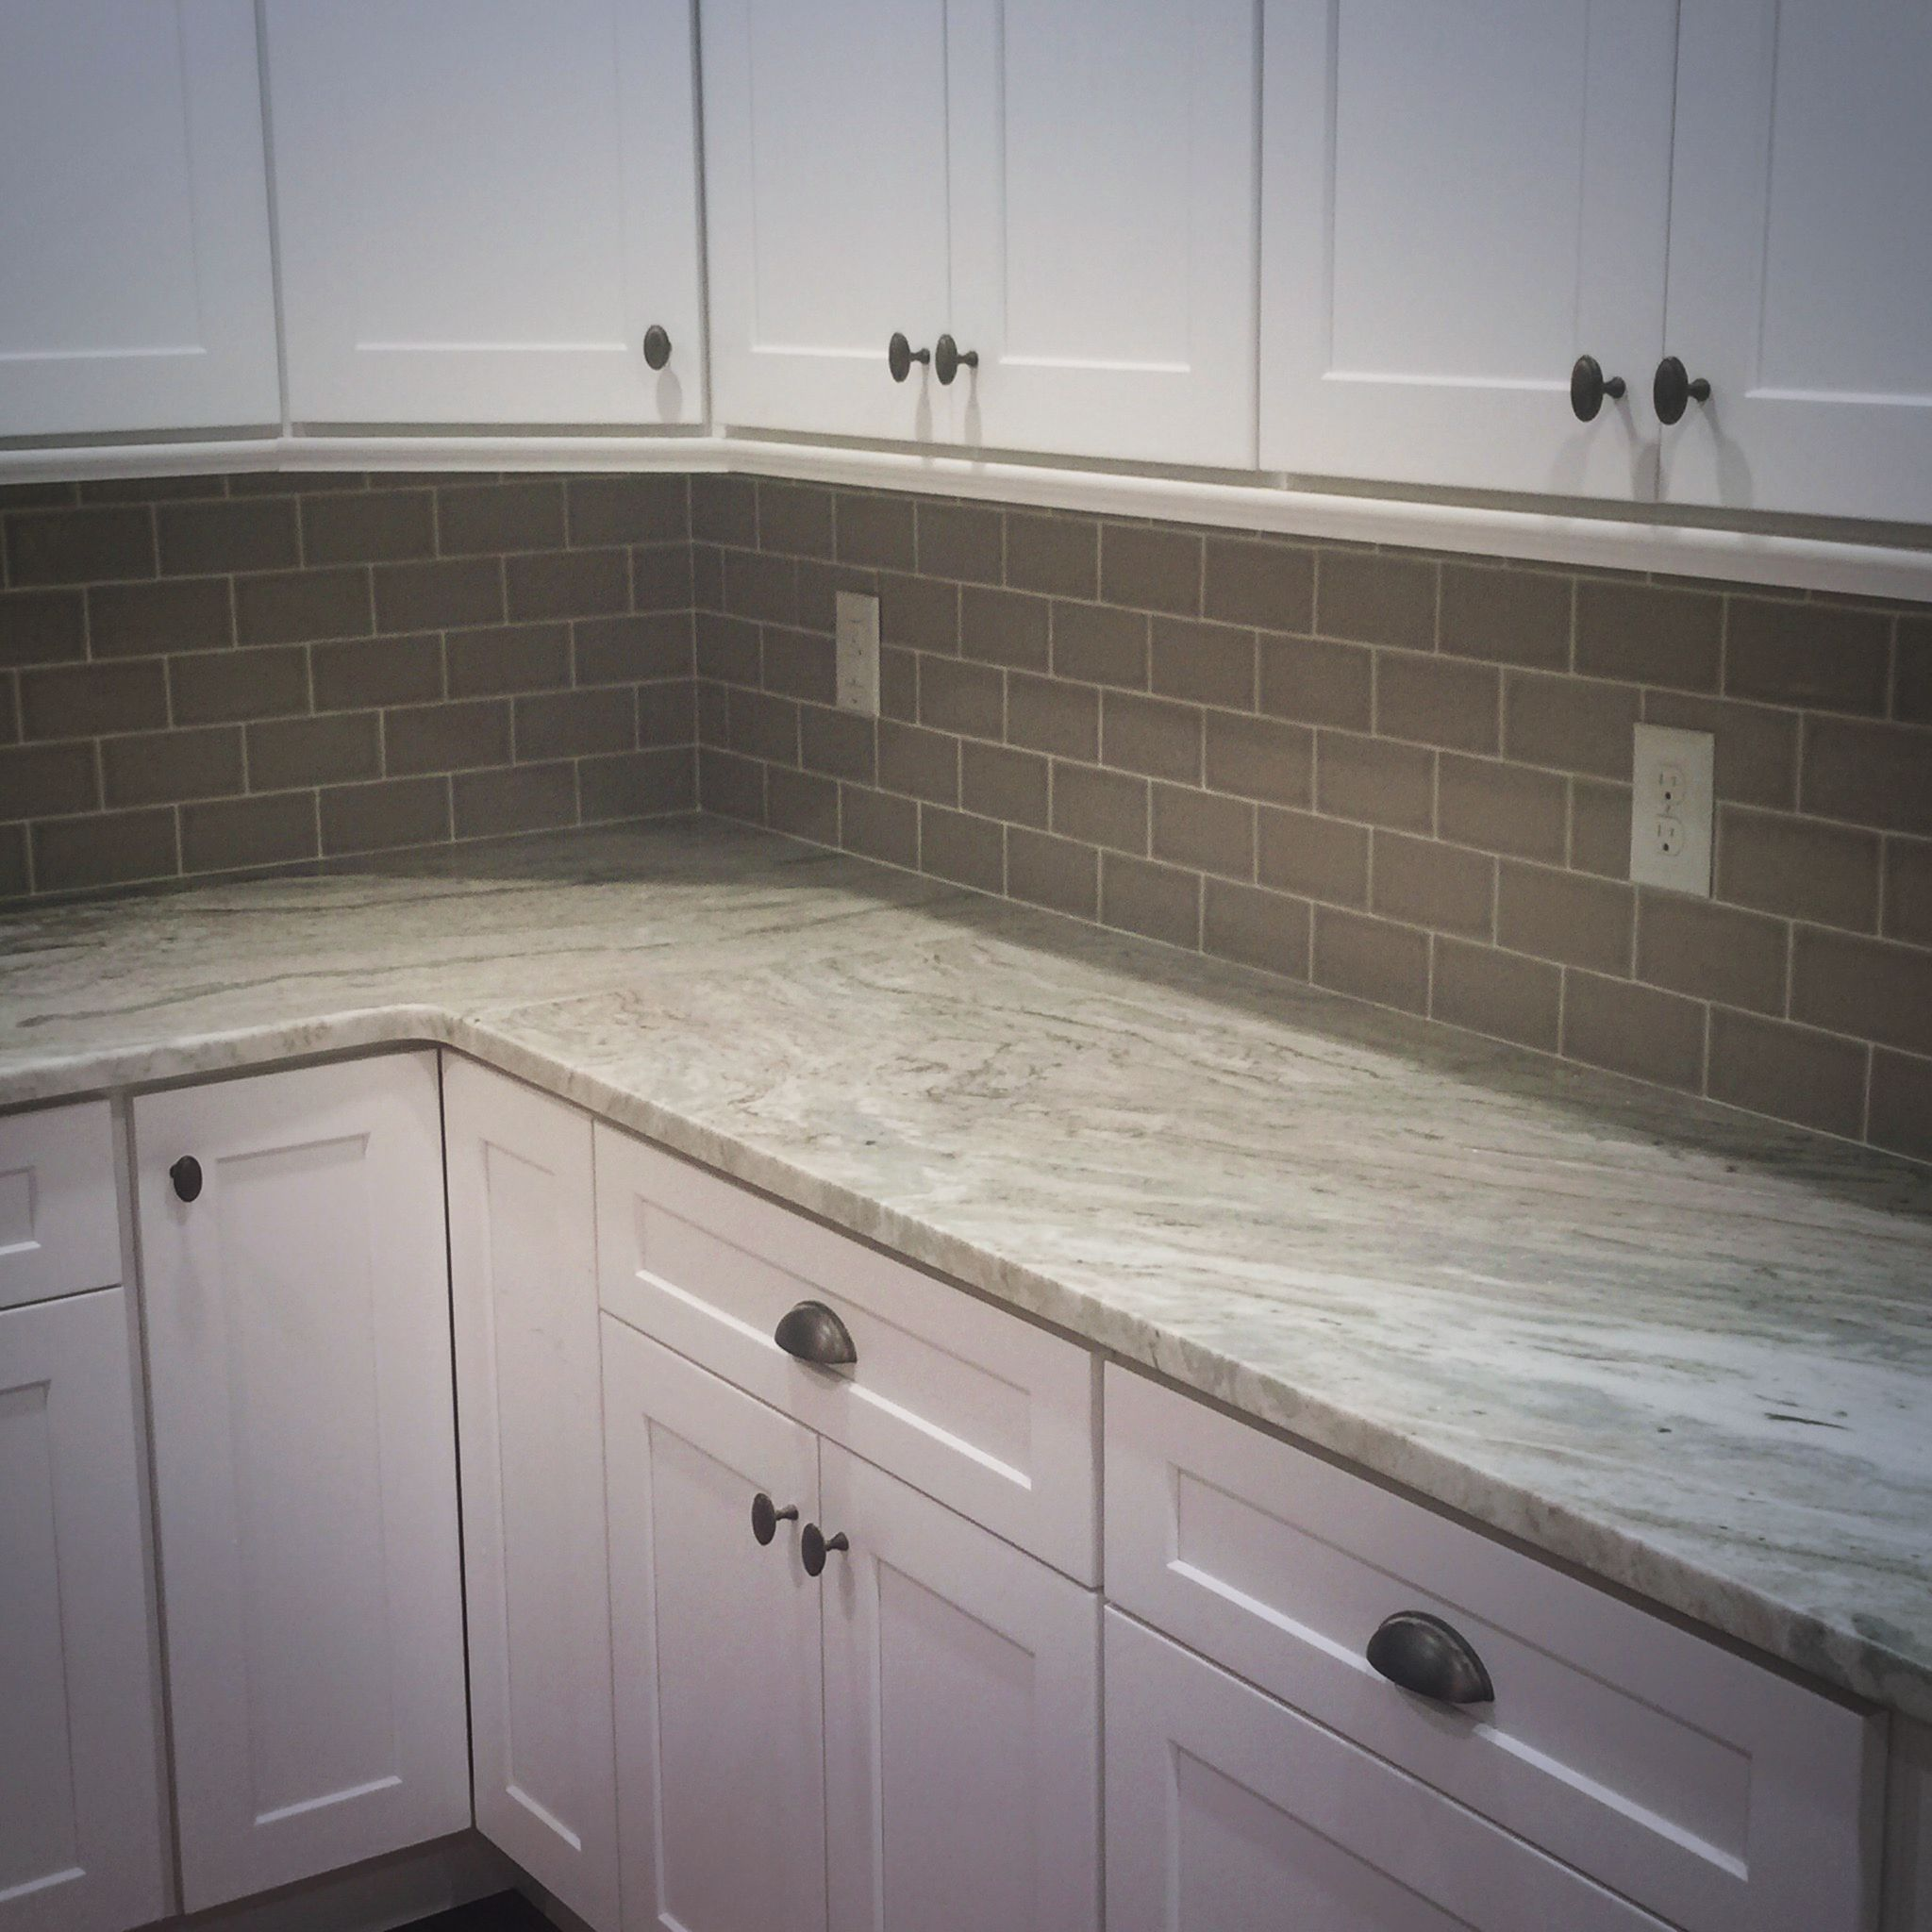 Trendy Gray Subway Tile Used In A Wrap Around Kitchen Back Splash By Old South Flooring Savannah Ga